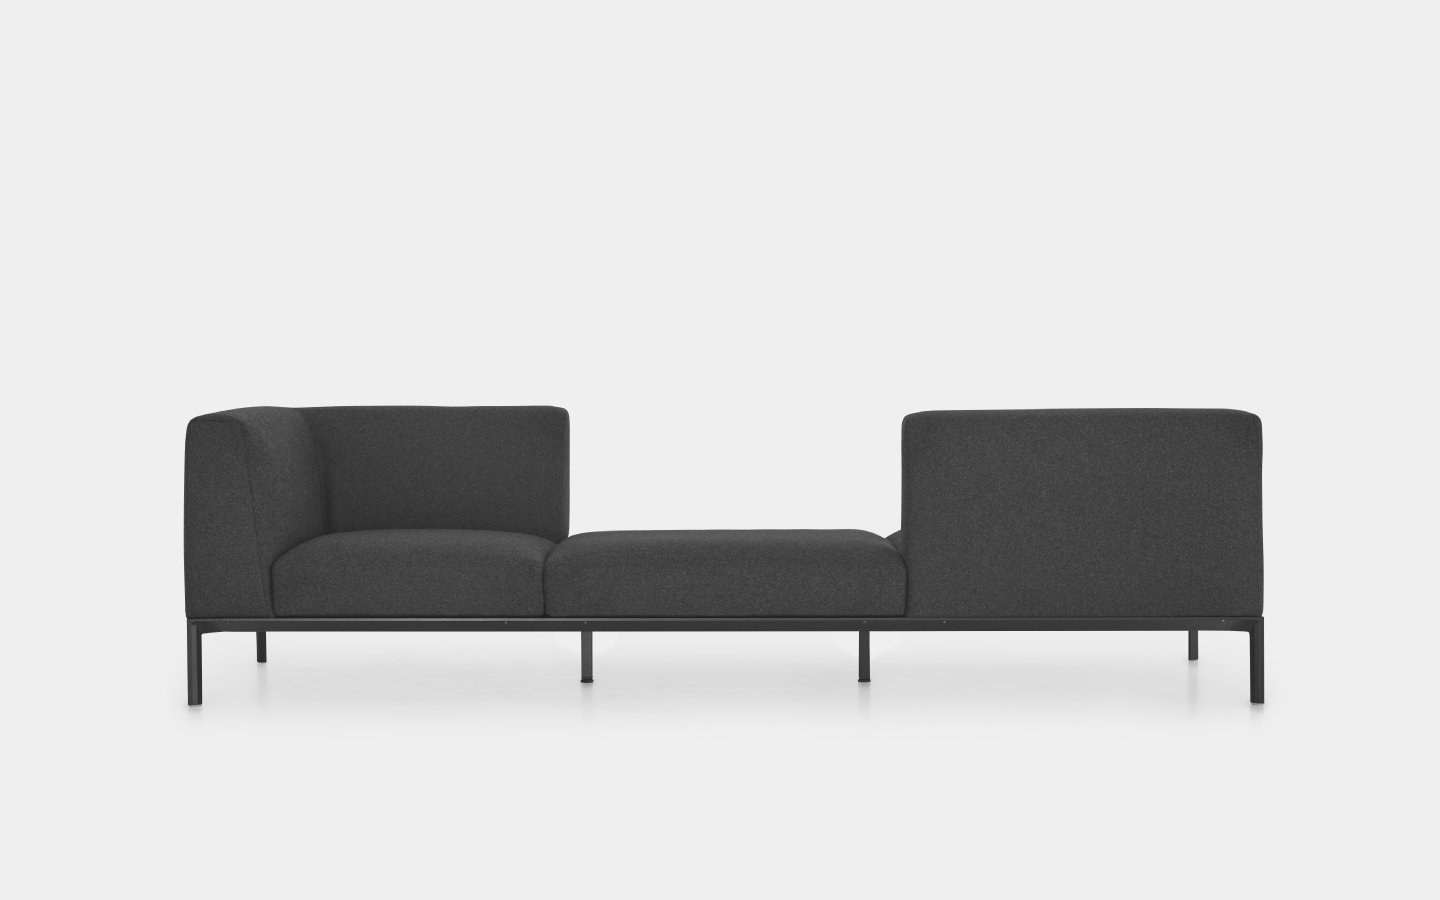 Add Soft Sofa modular from lapalma, designed by Francesco Rota